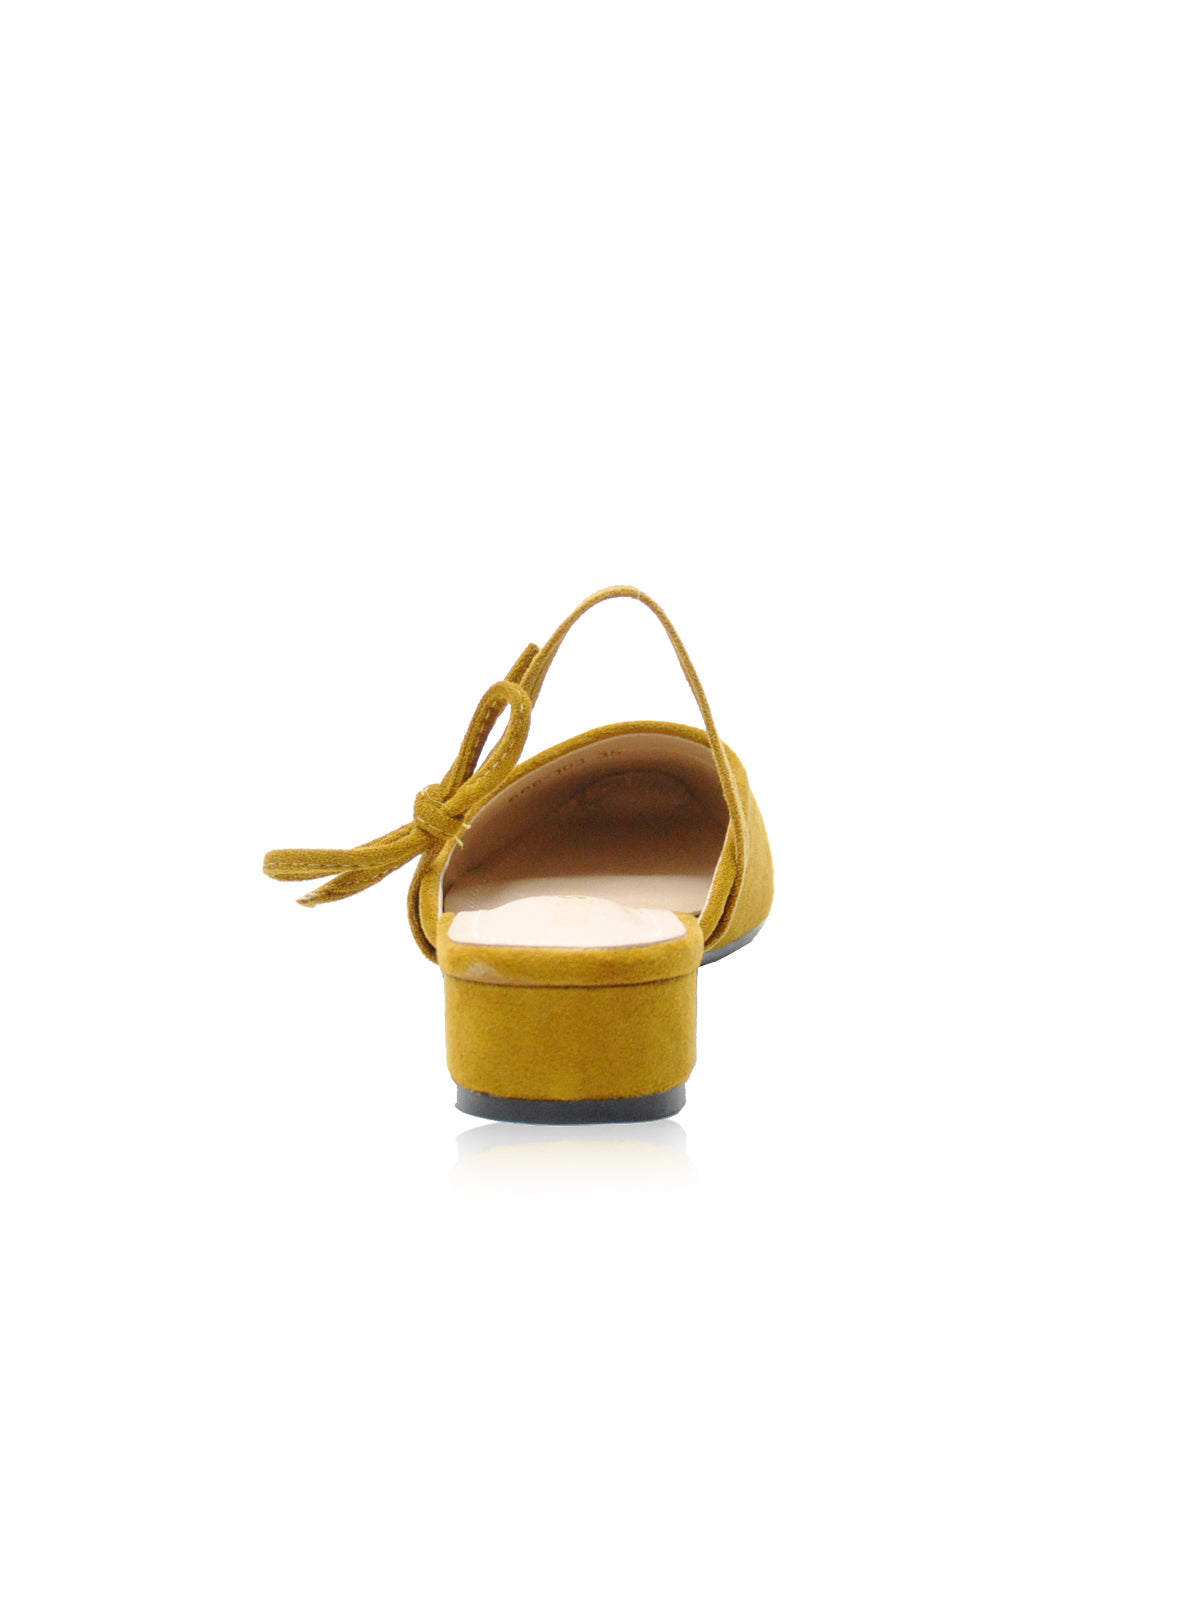 Caroline Mules in Mustard Yellow